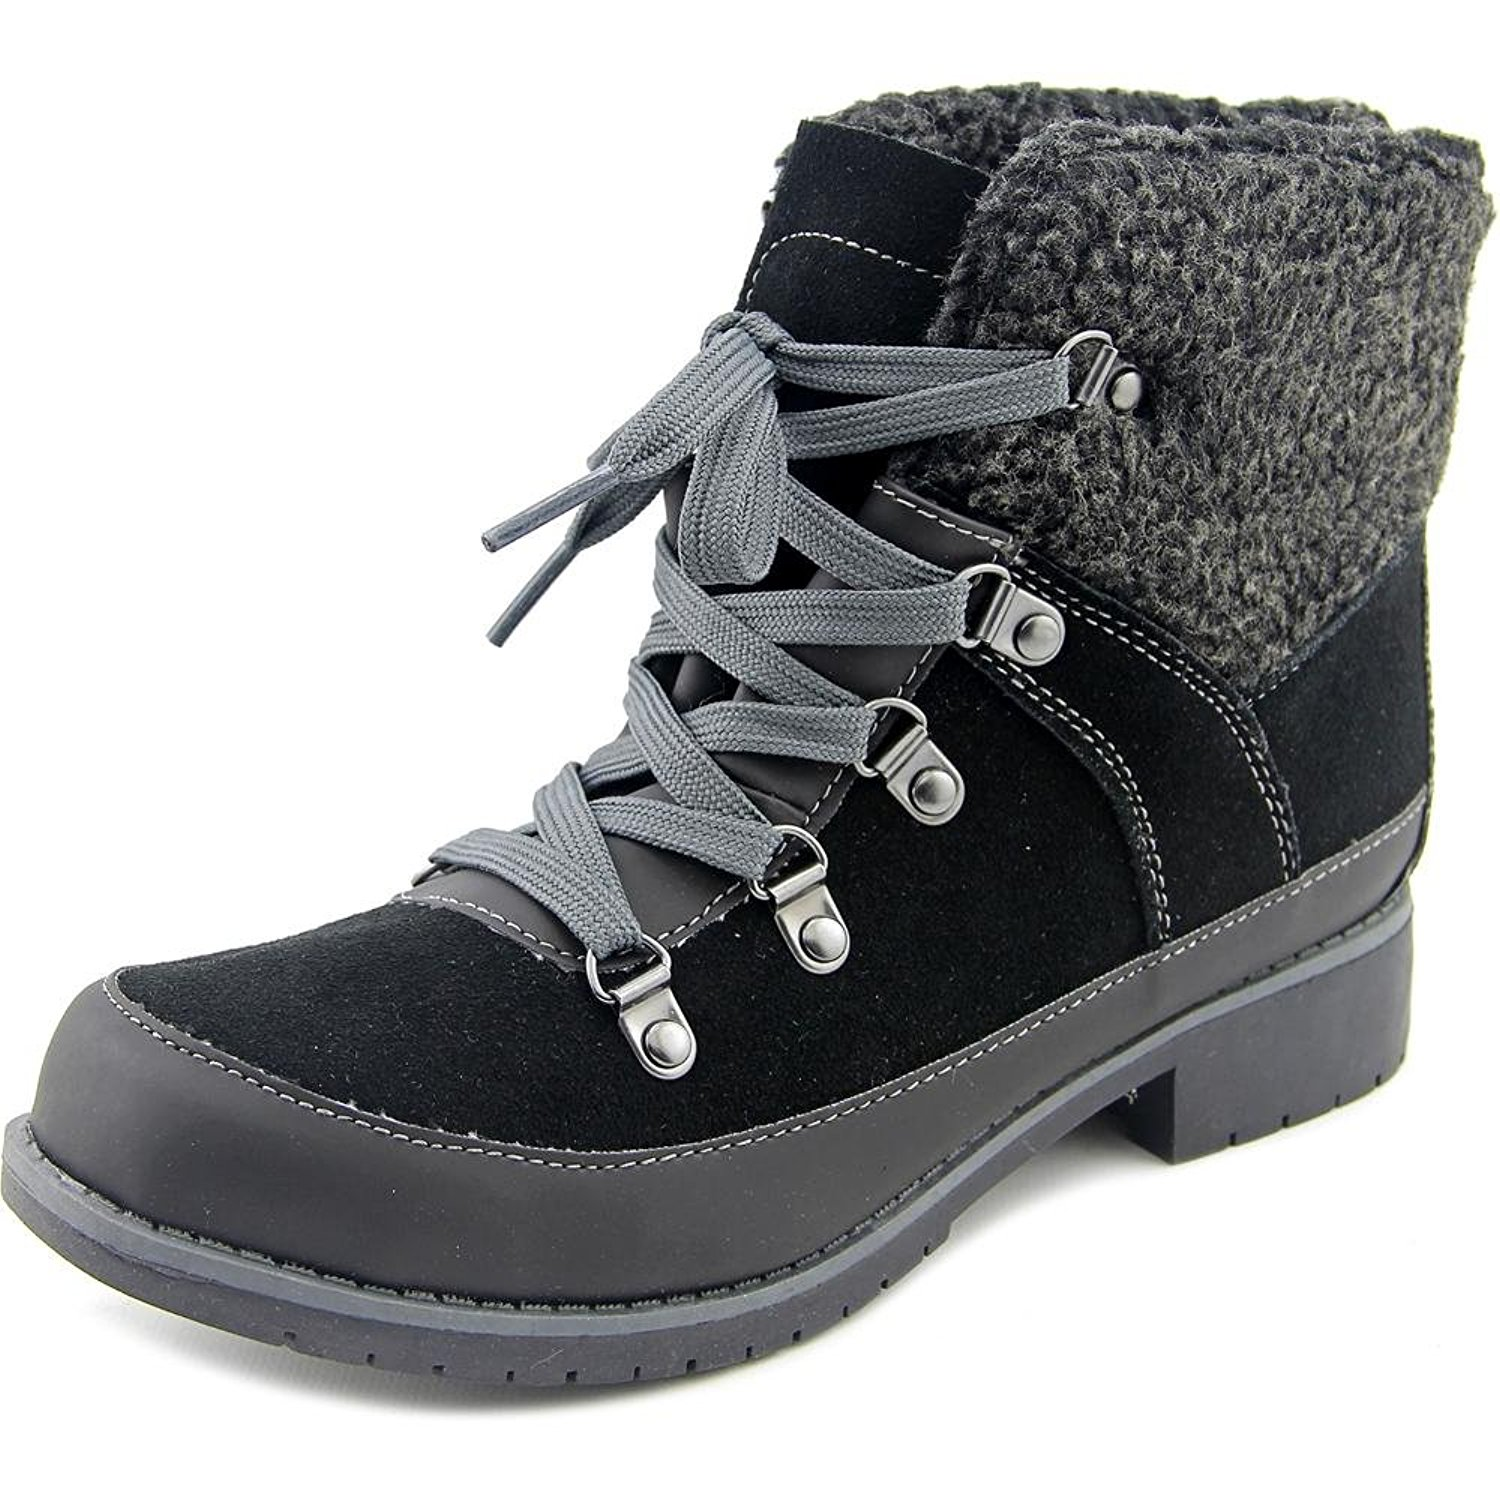 Sporto Debbie Women Round Toe Synthetic Black Ankle Boot Black Size 85